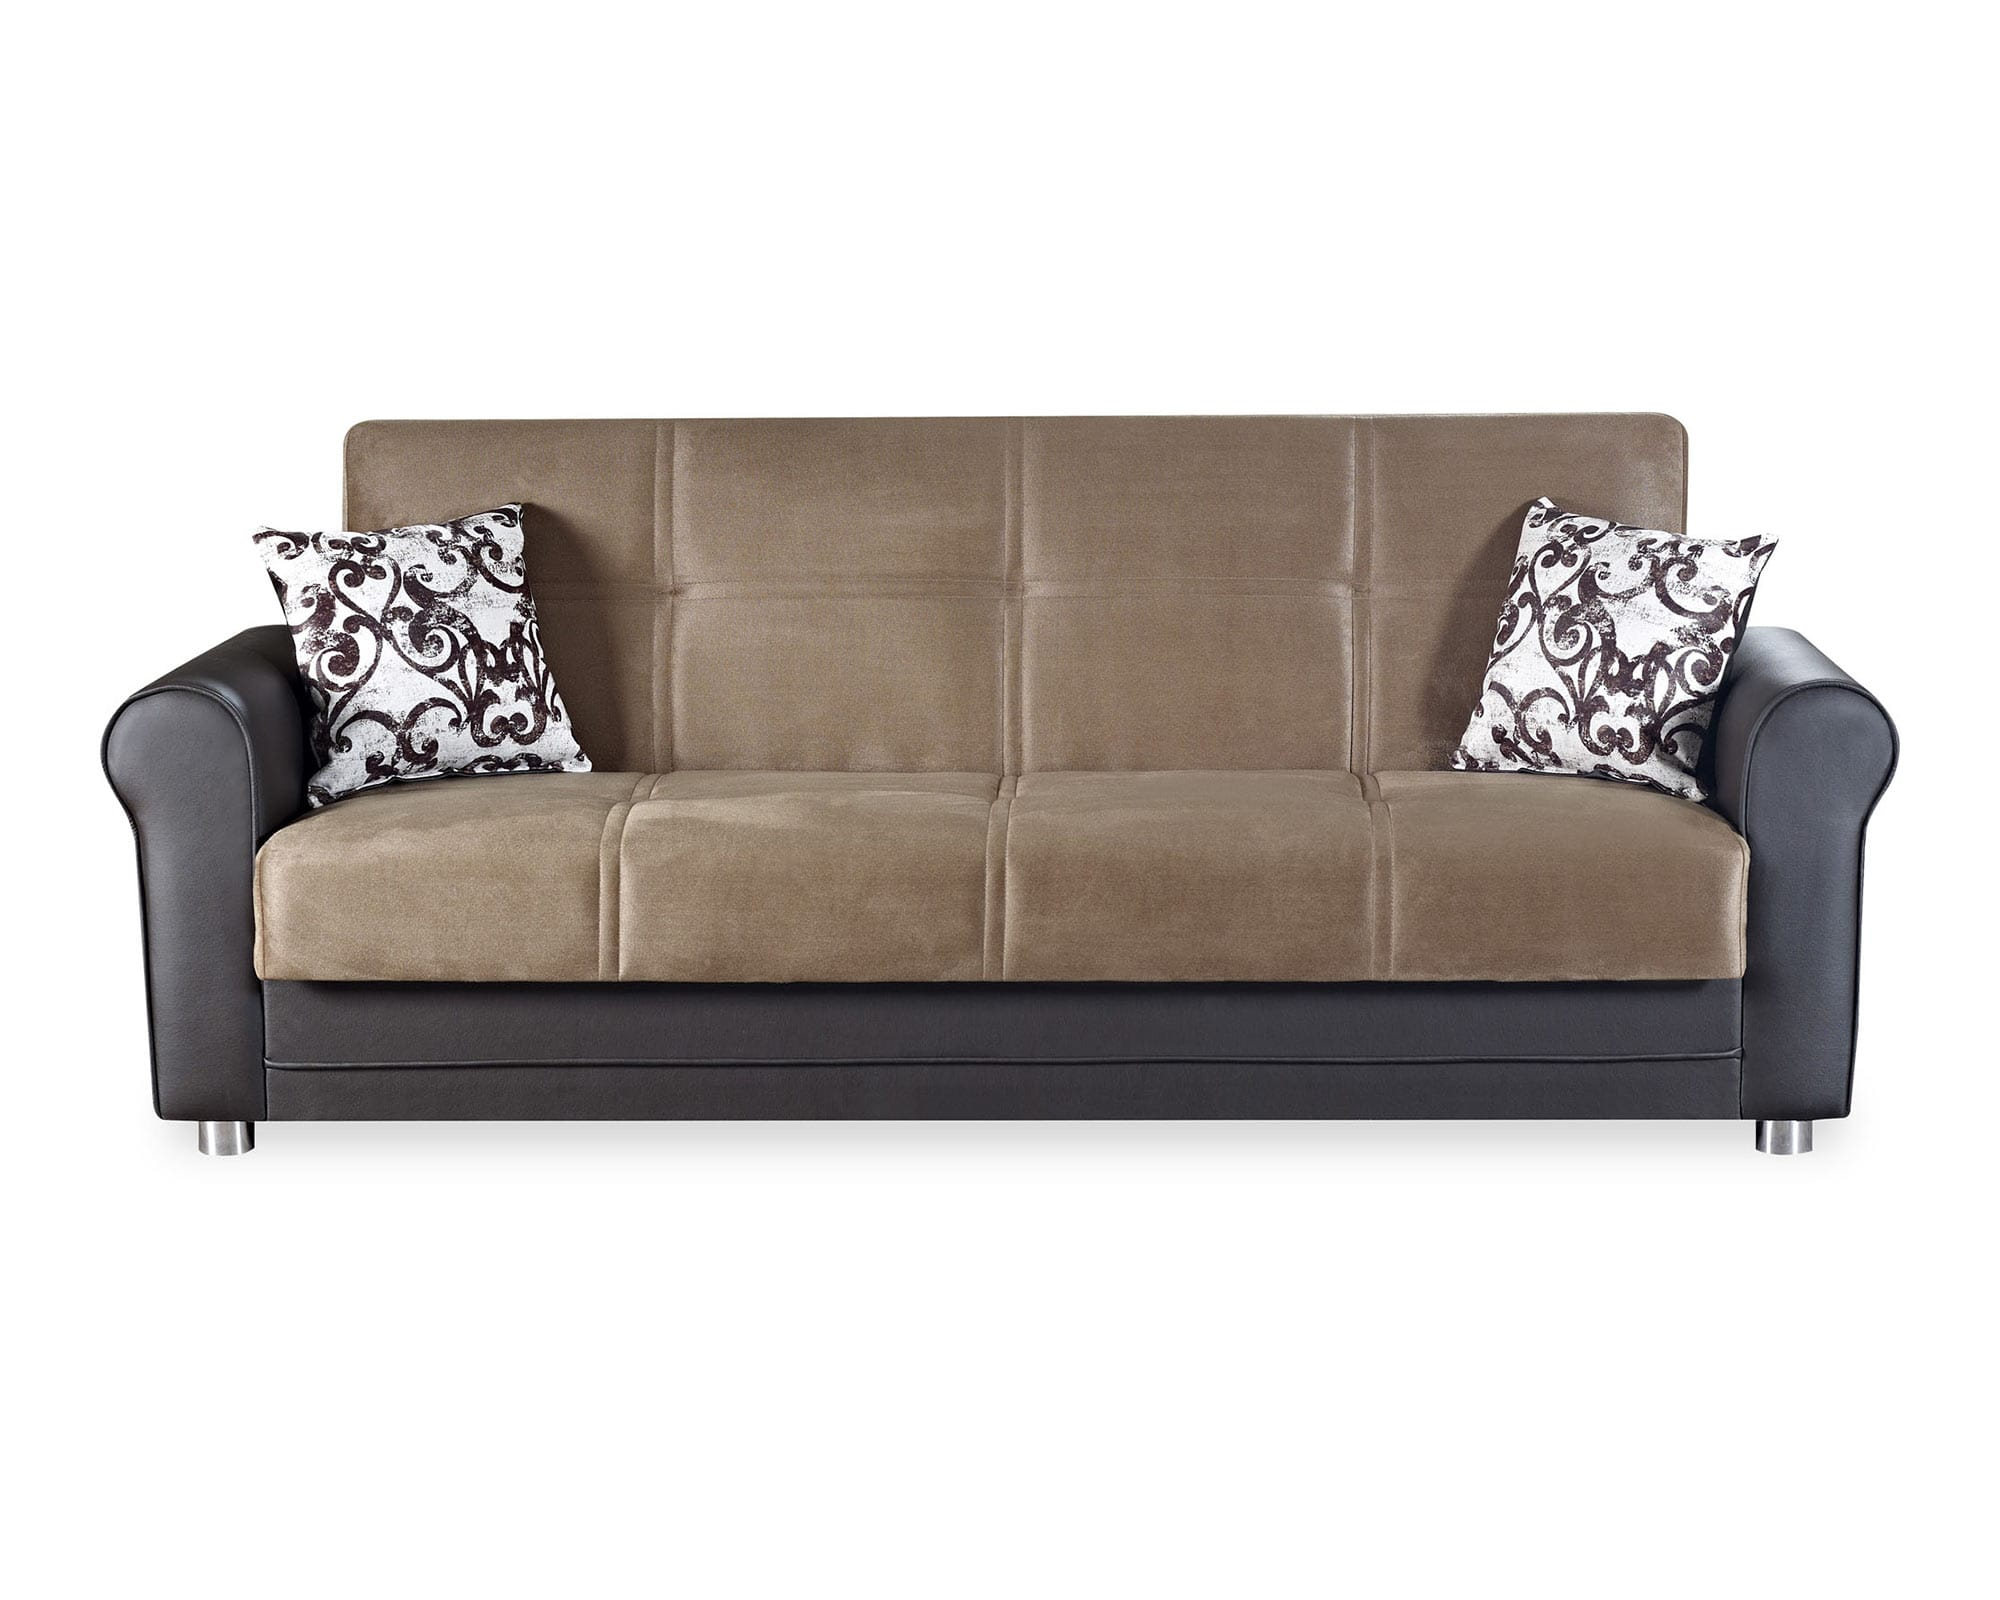 Avalon Plus Prusa Brown Convertible Sofa by Casamode